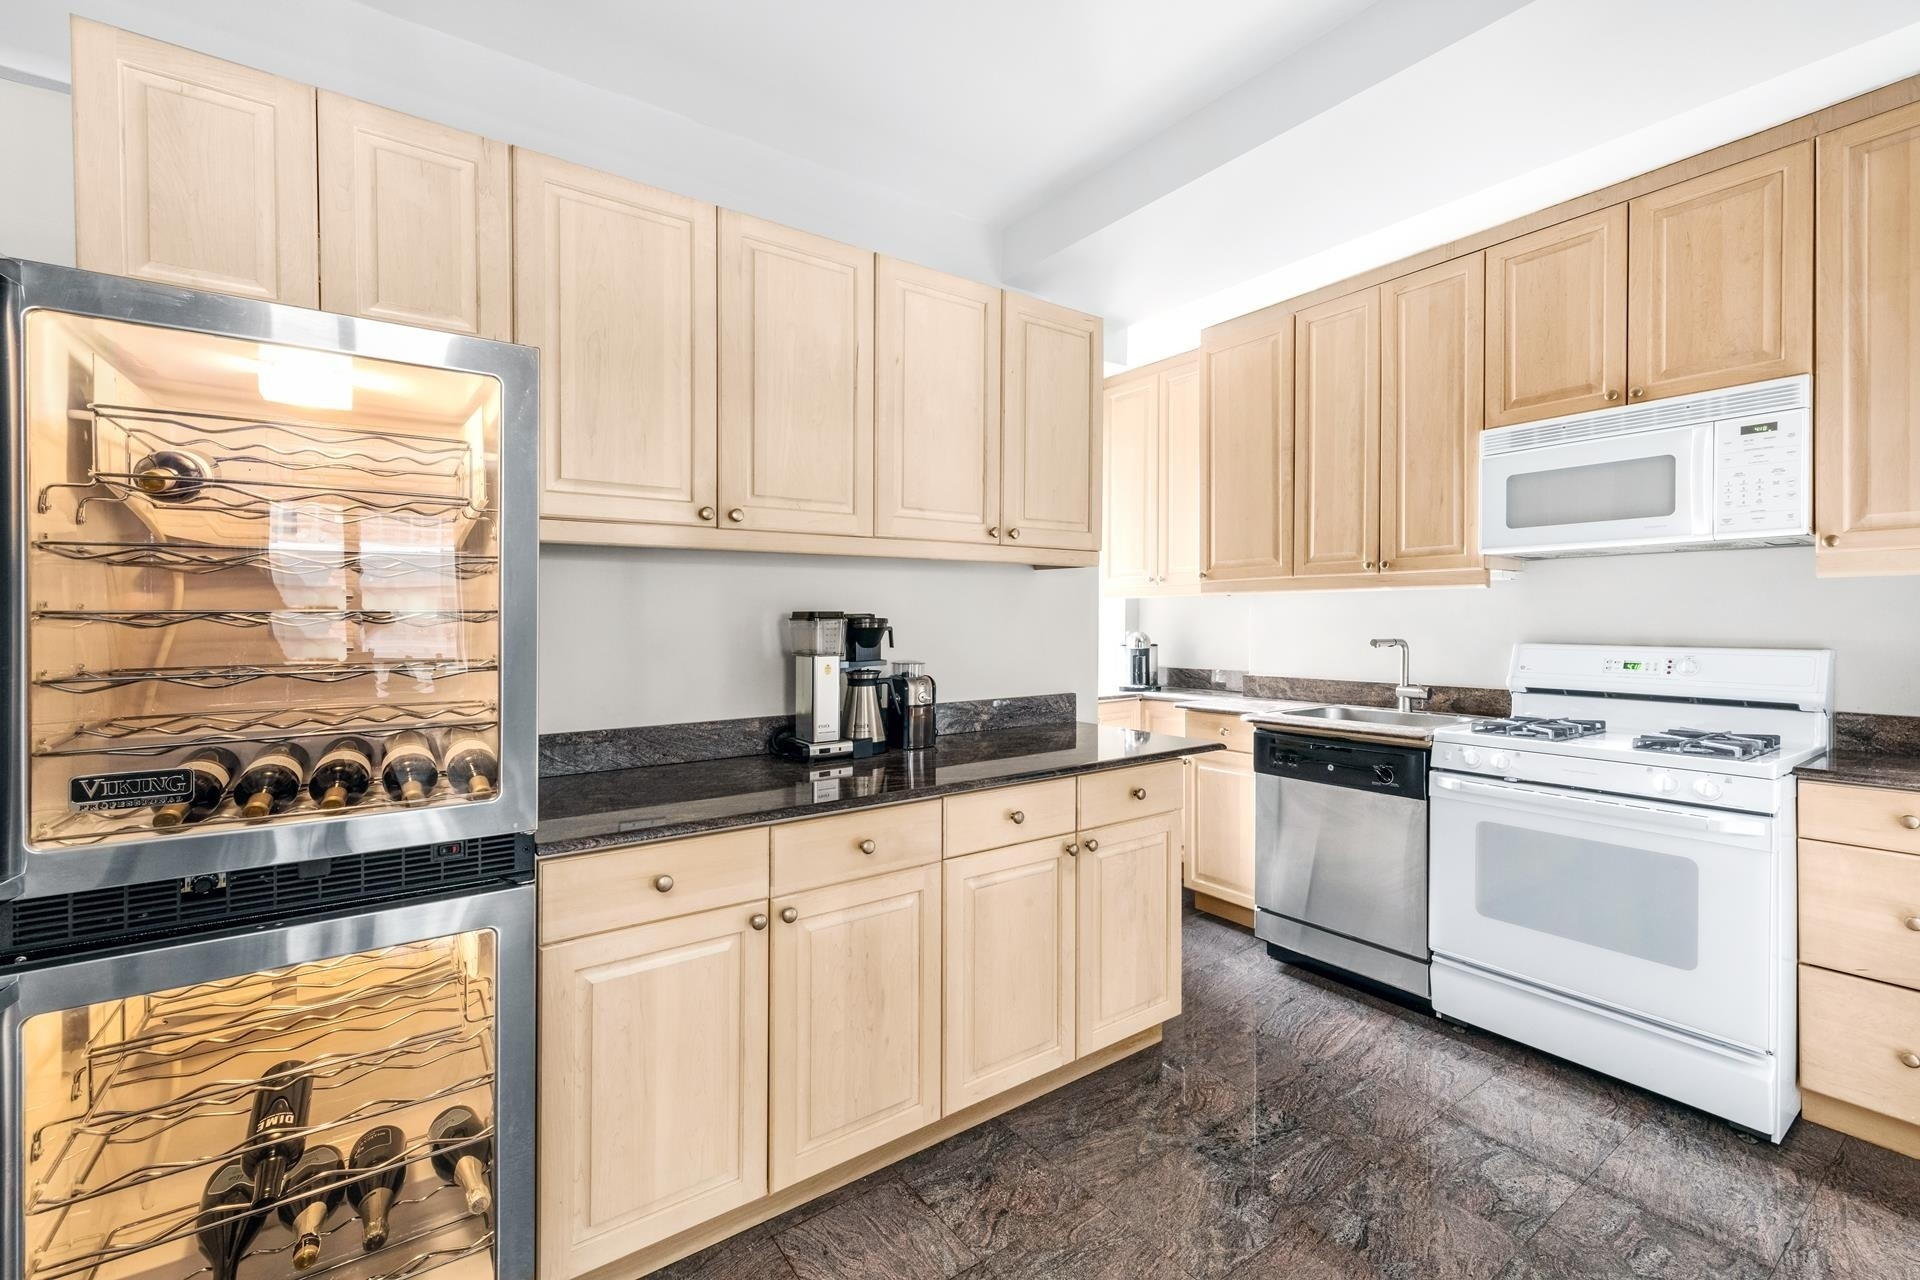 3. Co-op Properties at 227 E 57TH ST, 227 East 57th St, 8CD New York